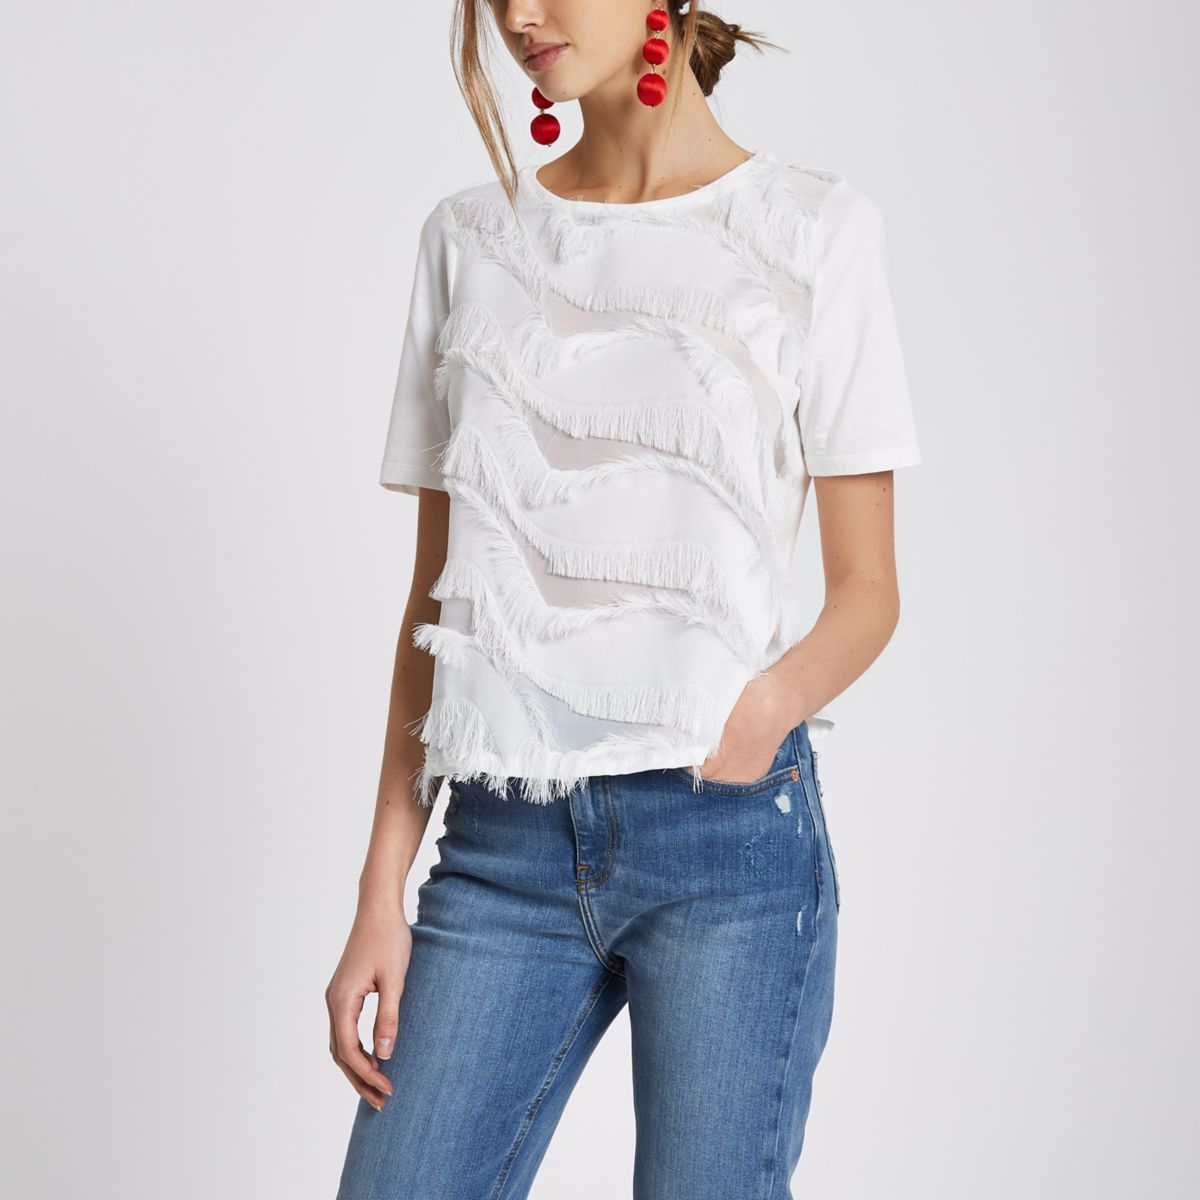 how to wear a boxy t shirt